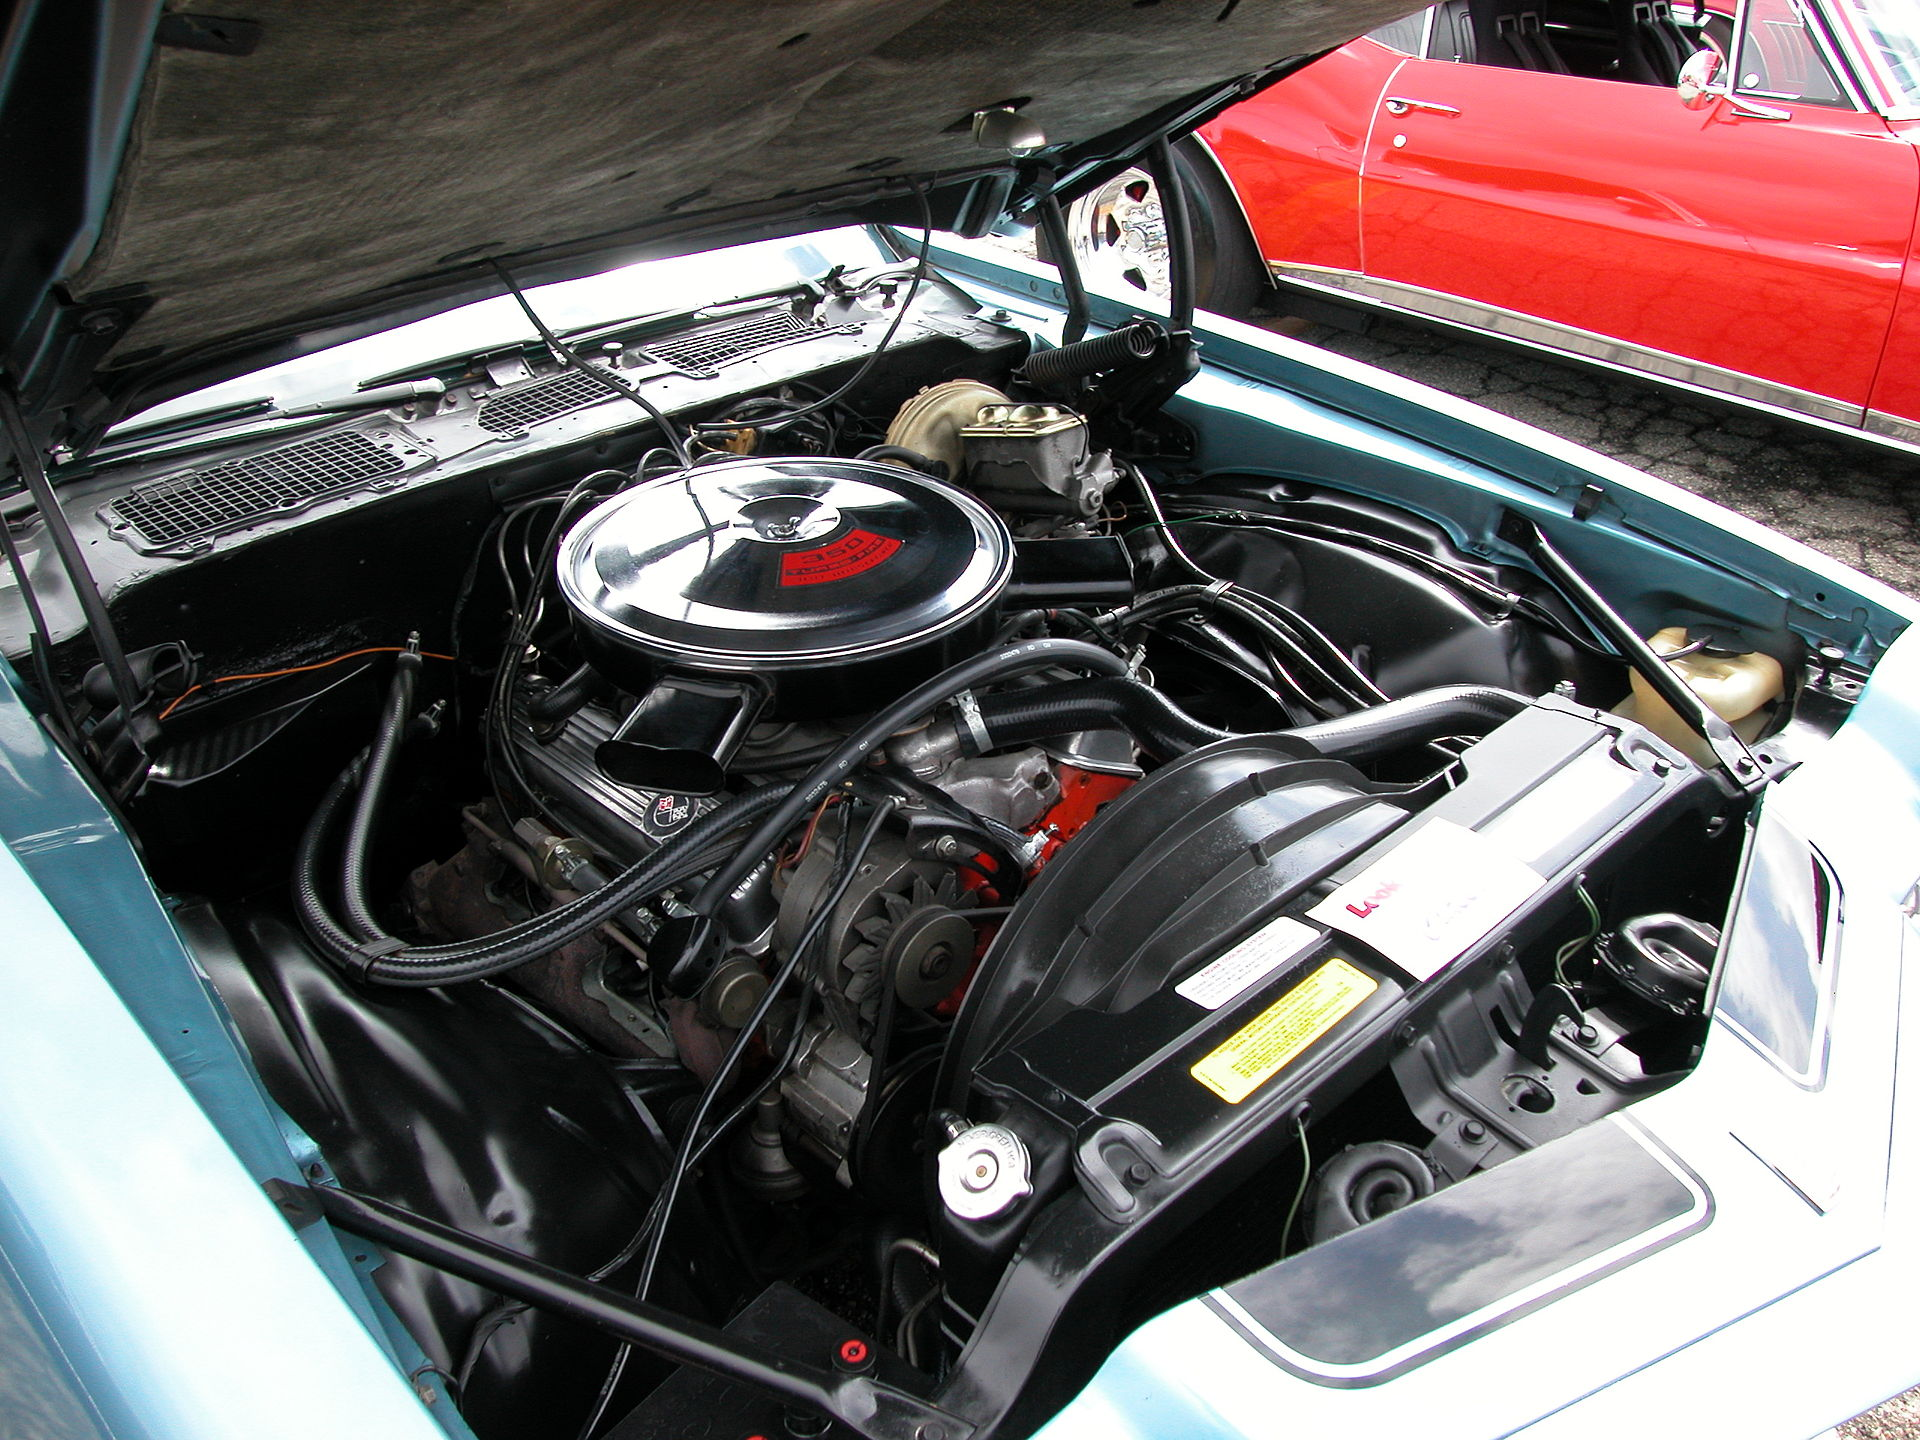 chevrolet small block engine wikipedia 1971 monte carlo engine diagram 1999 monte carlo engine diagram